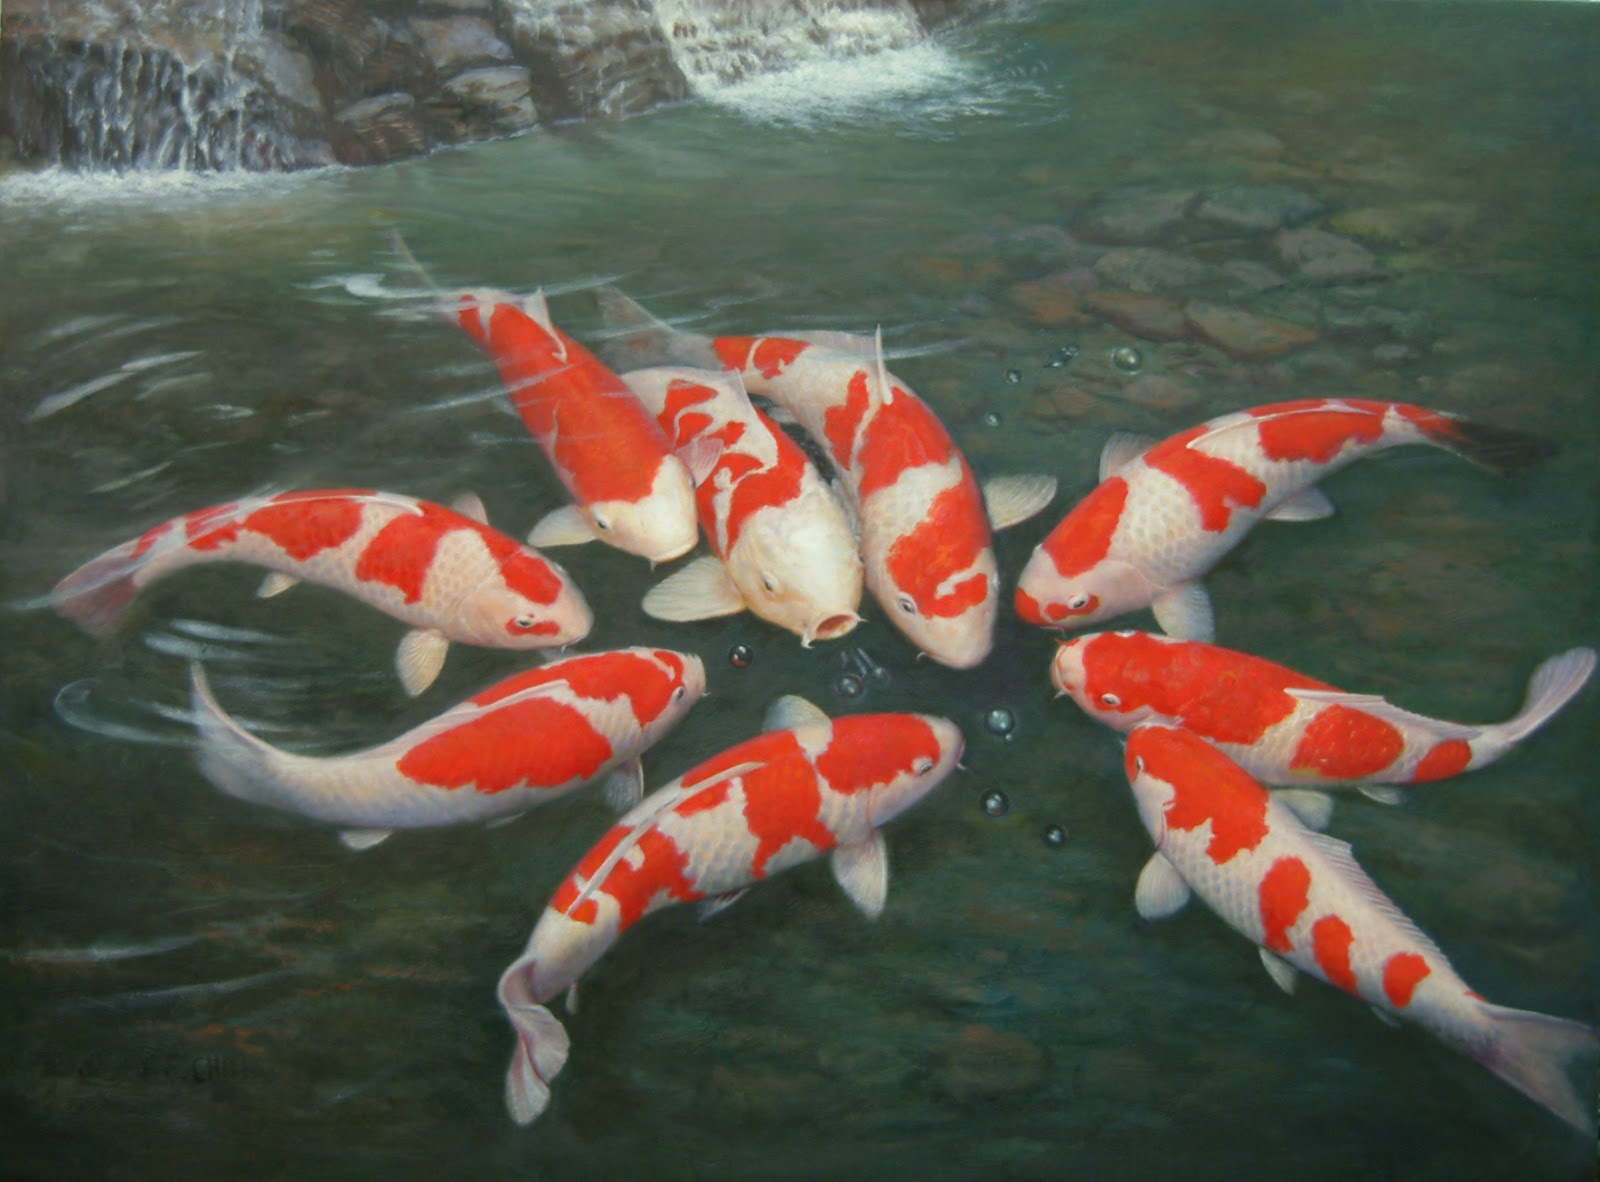 Koi aquarium fish koi koi koi la de koi coy koi koi fish for Purchase koi fish